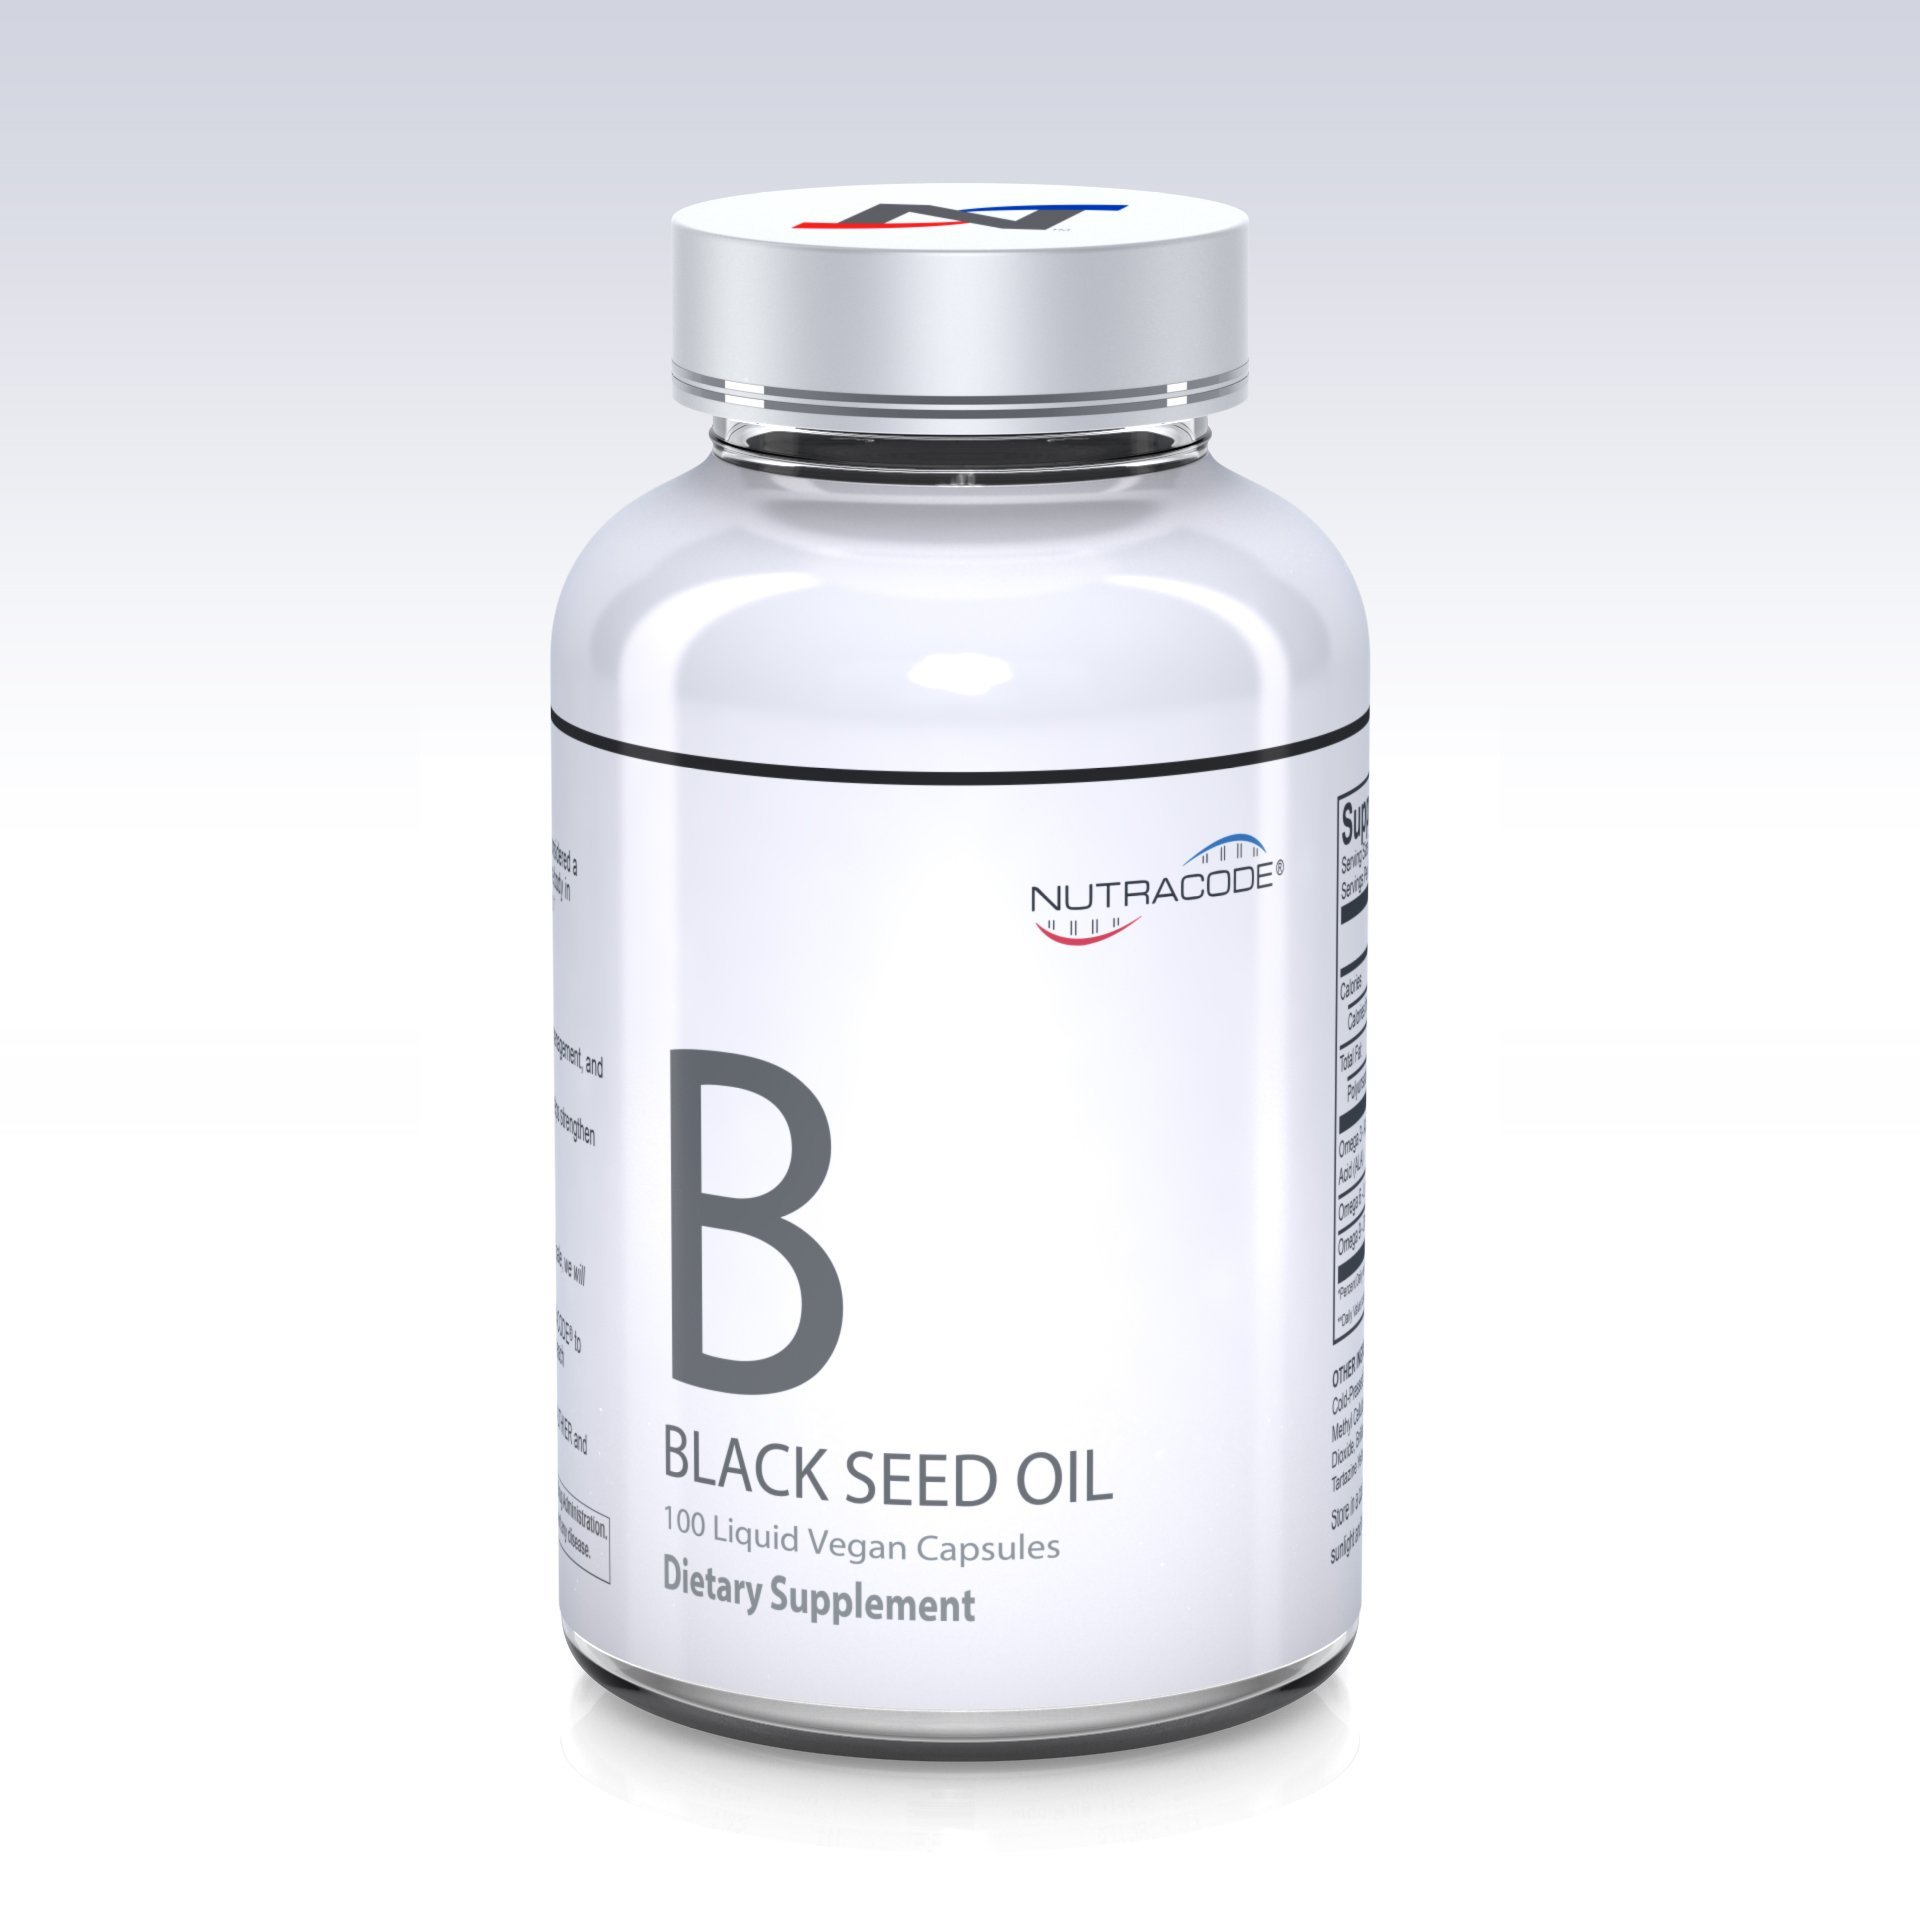 Nutracode® Black Cumin Seed Oil 500 mg 100 Liquid Vegan Capsules, Powerful Immune System Booster and Antioxidant (Cold-Pressed, Non-GMO)